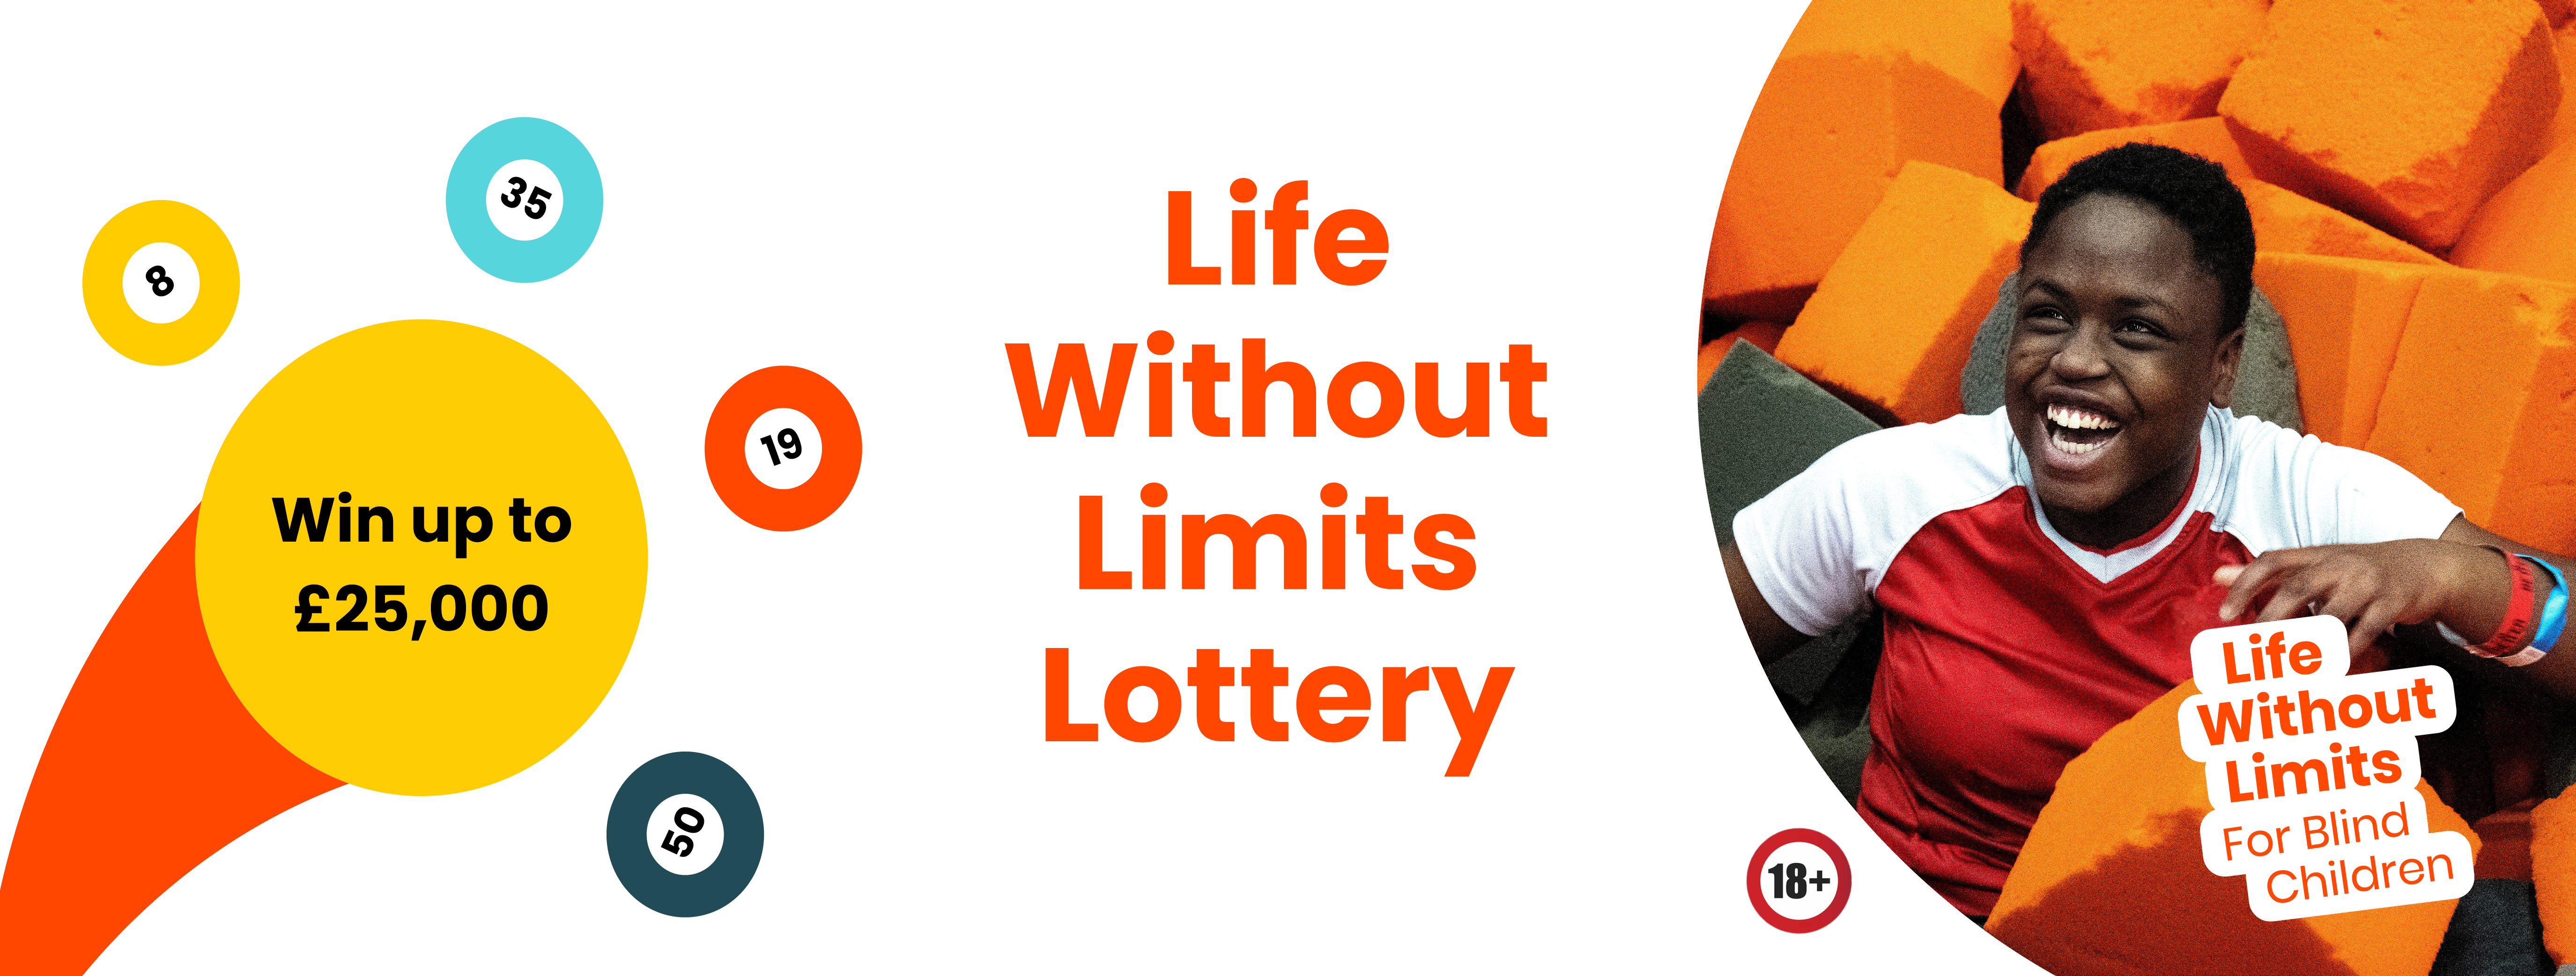 Graphic with different coloured lottery balls, the text 'Life Without Limits Lottery', and an image of a young girl smiling in a foam pit